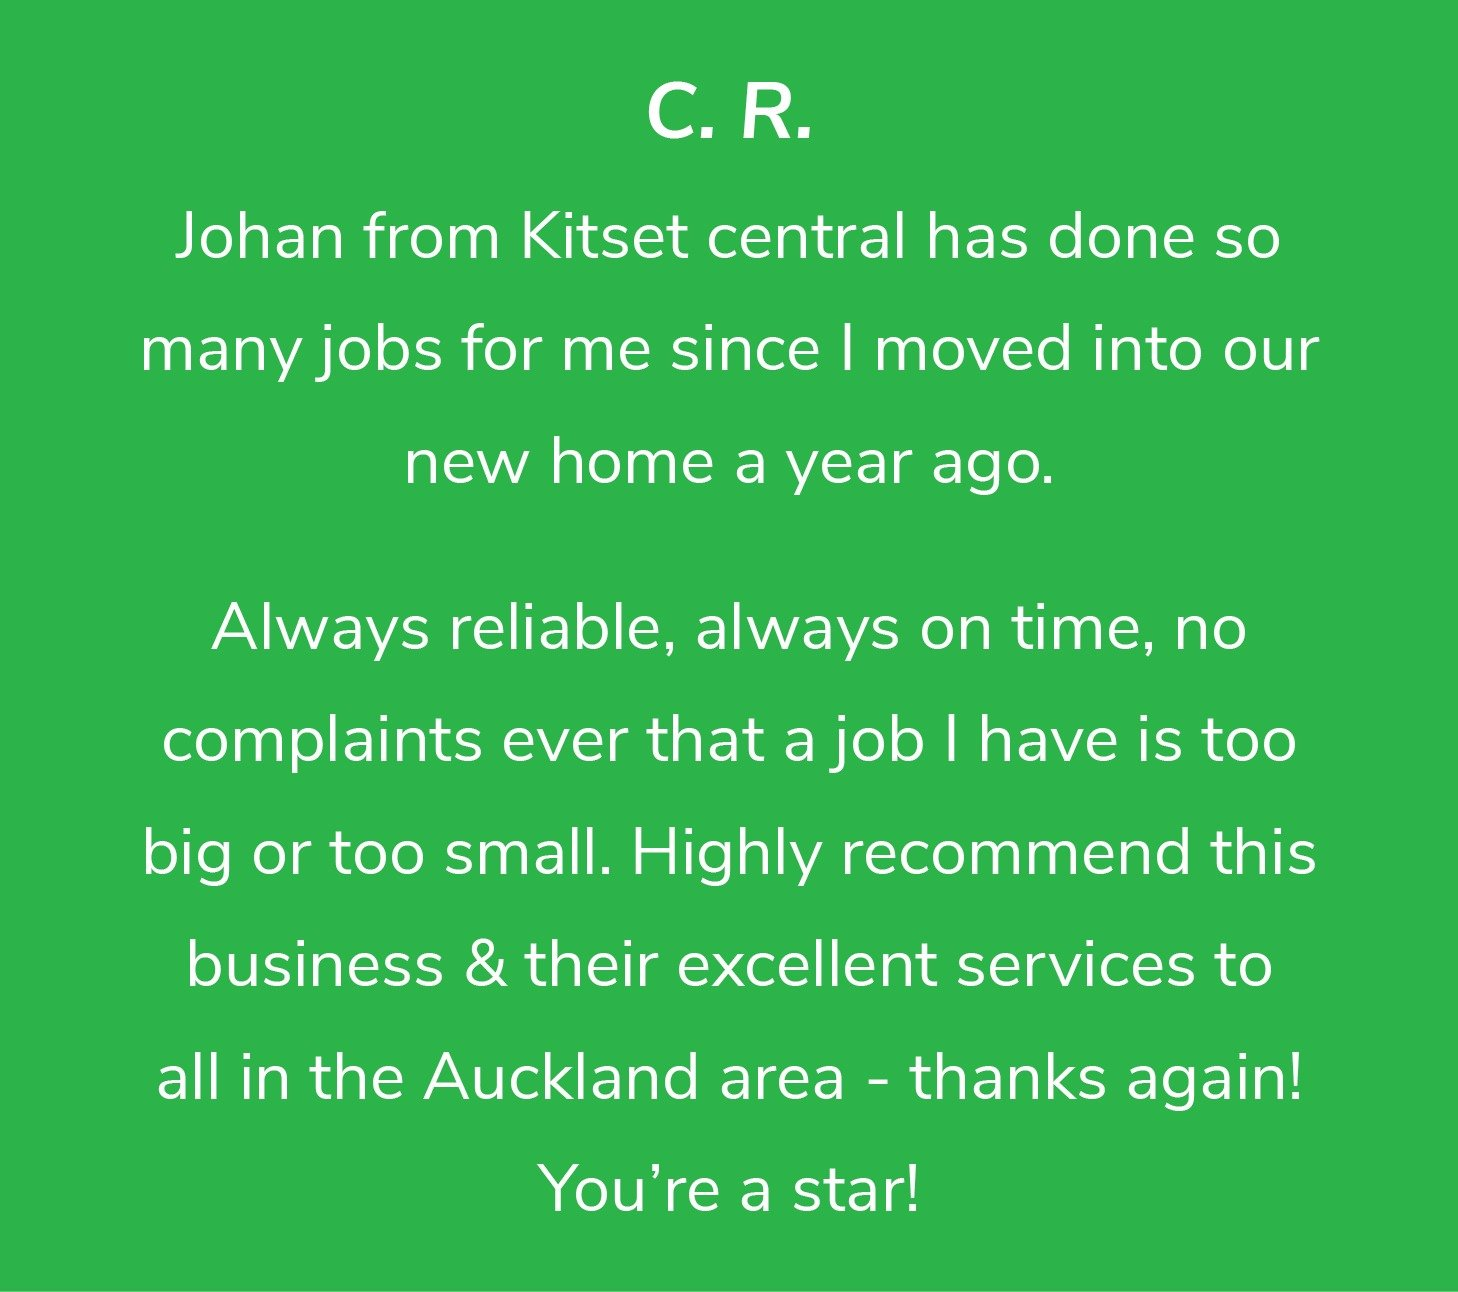 Customer review from C.R.